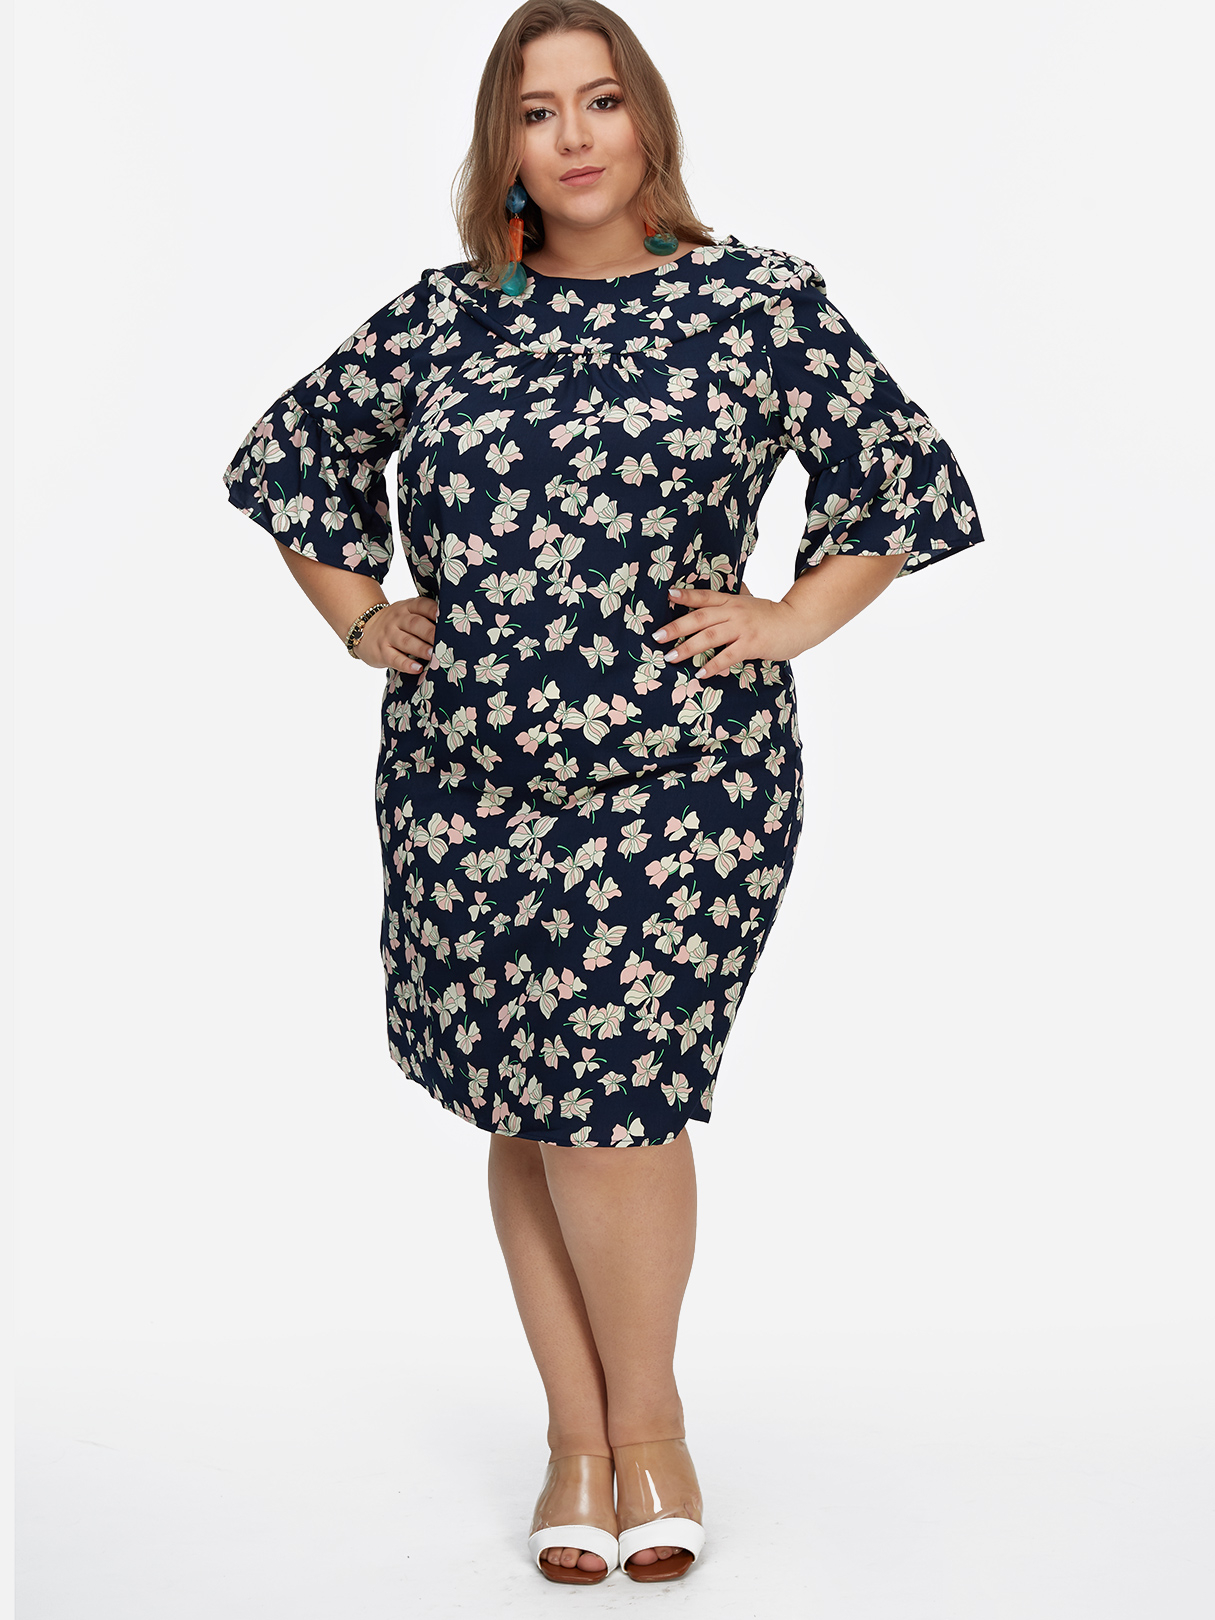 Plus Size Navy Floral Print Flared Sleeves Dress